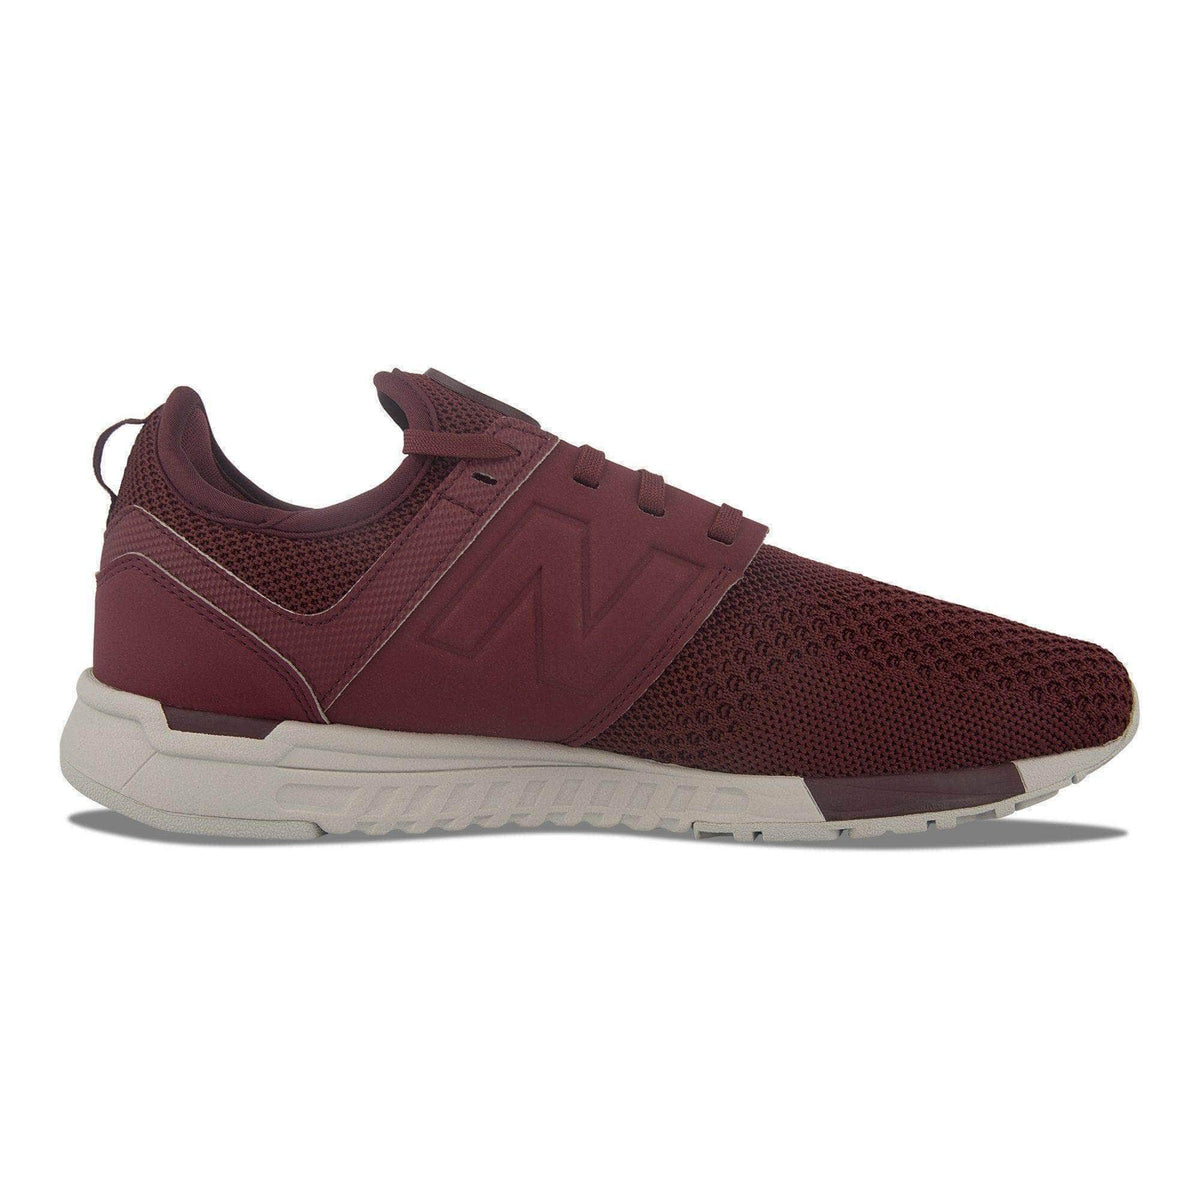 New Balance FOOTWEAR New Balance Winter Knit - Men's